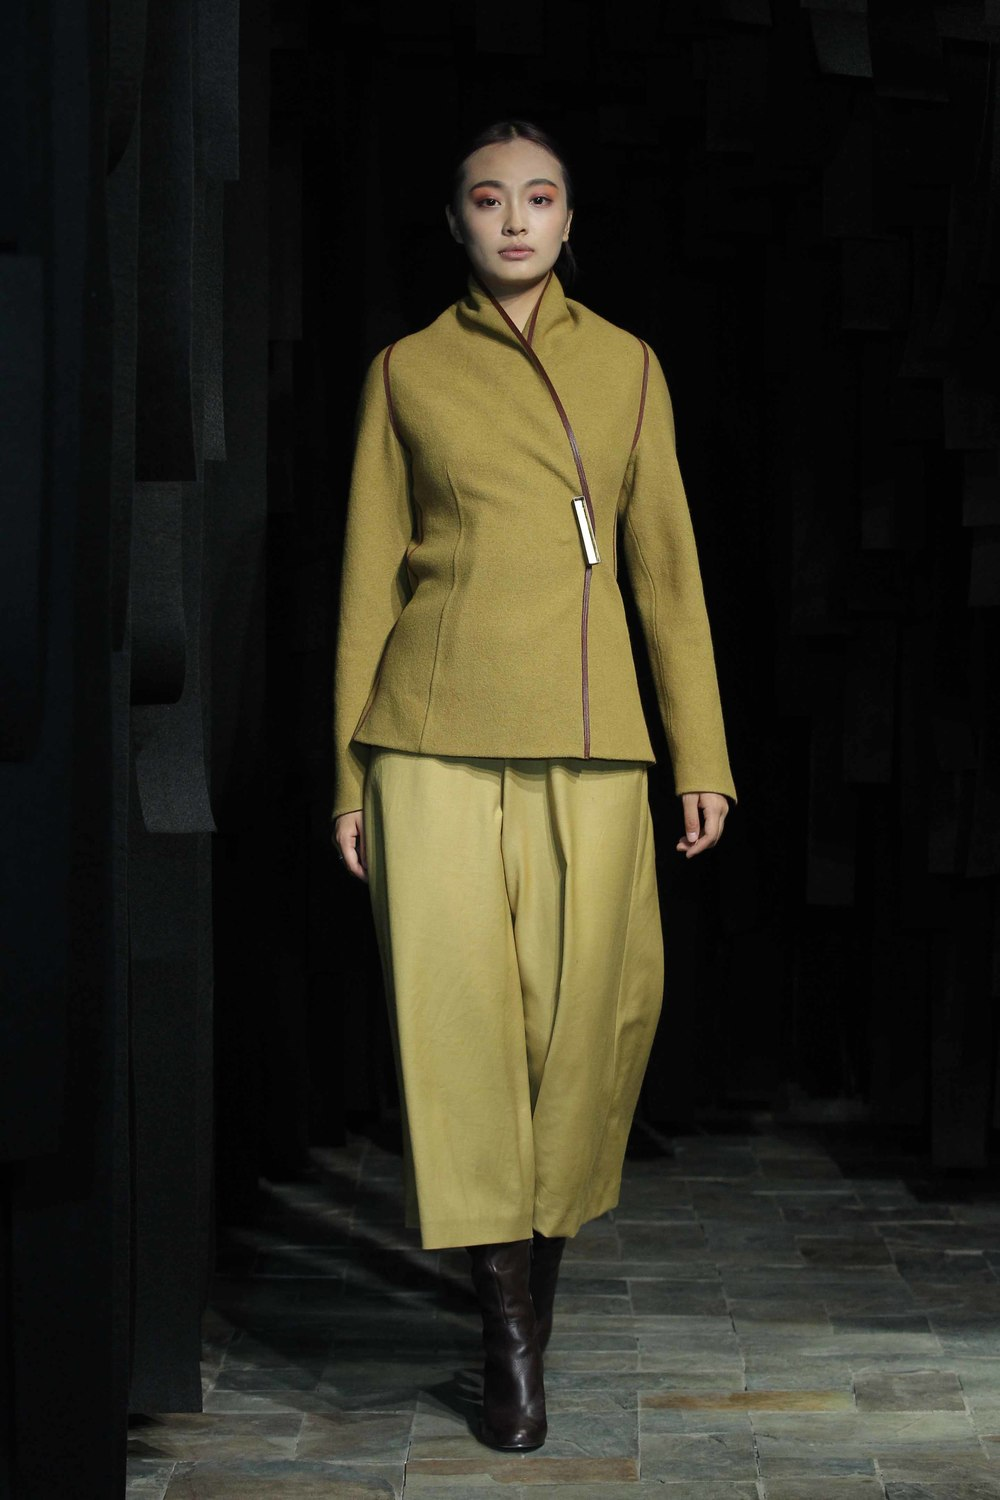 Fitted, hand-dyed mustard, wool jacket with contrasting leather trim // wide mustard natural-dyed, woolen 7/8 pants